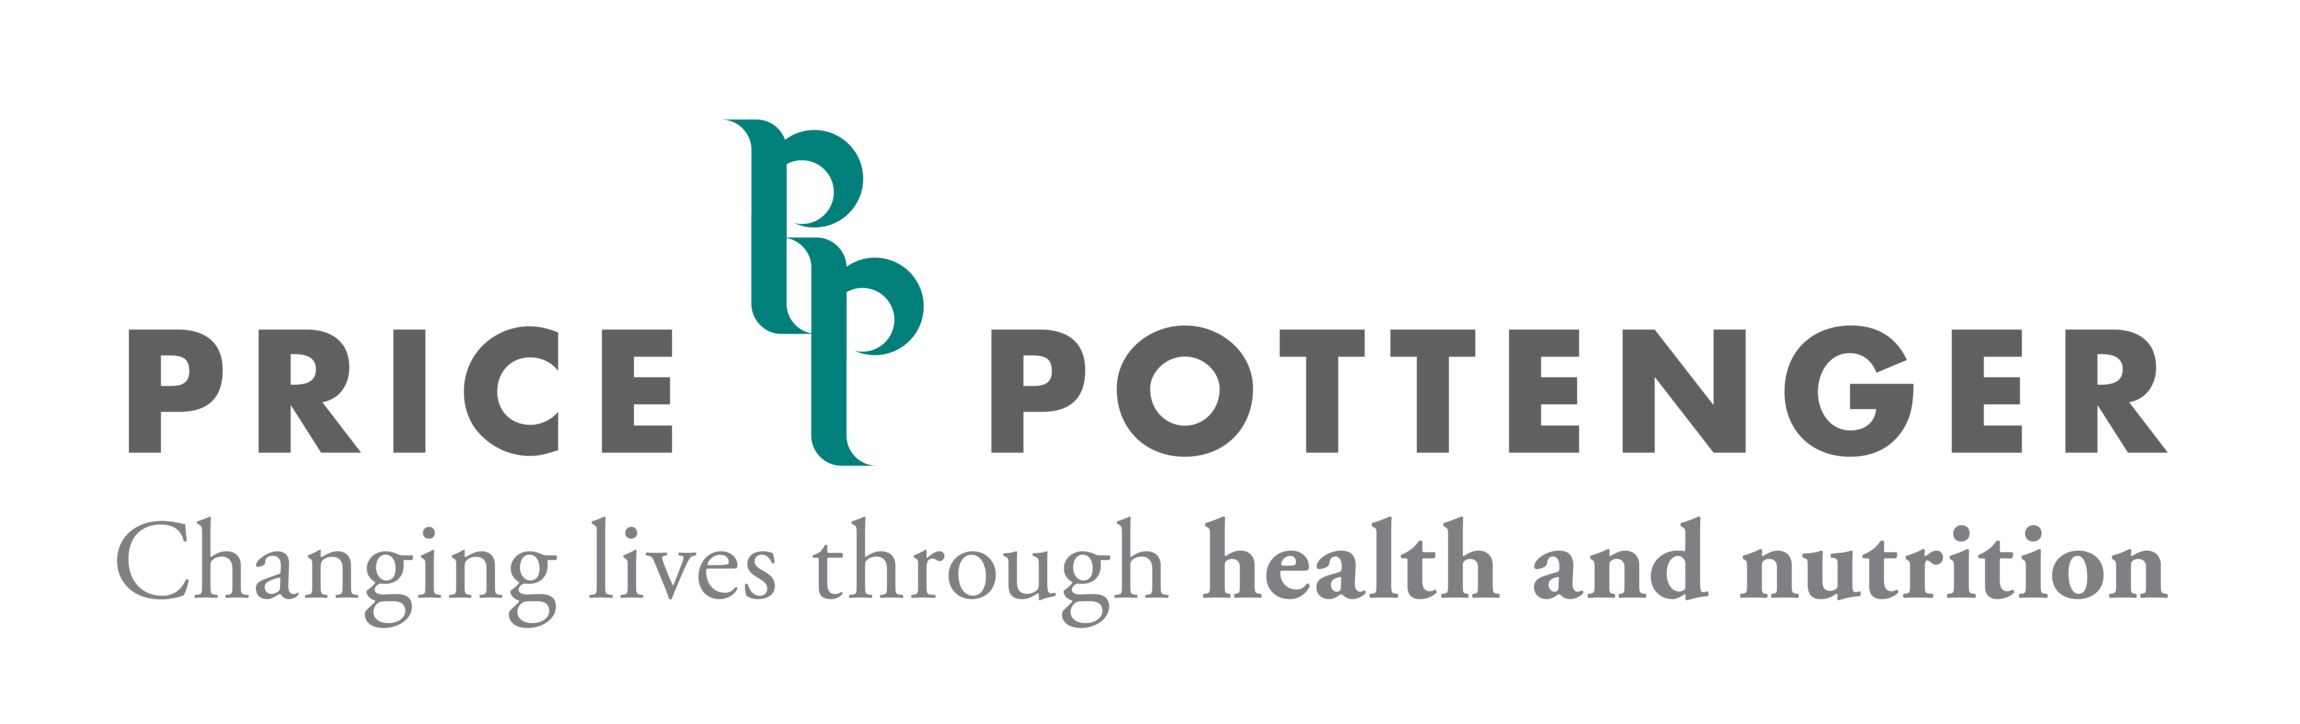 Price pottenger nutrition foundation health and nutrition courses the price pottenger nutrition foundation has been teaching people how to attain optimal health for over 60 years our mission is to educate people on the fandeluxe Choice Image